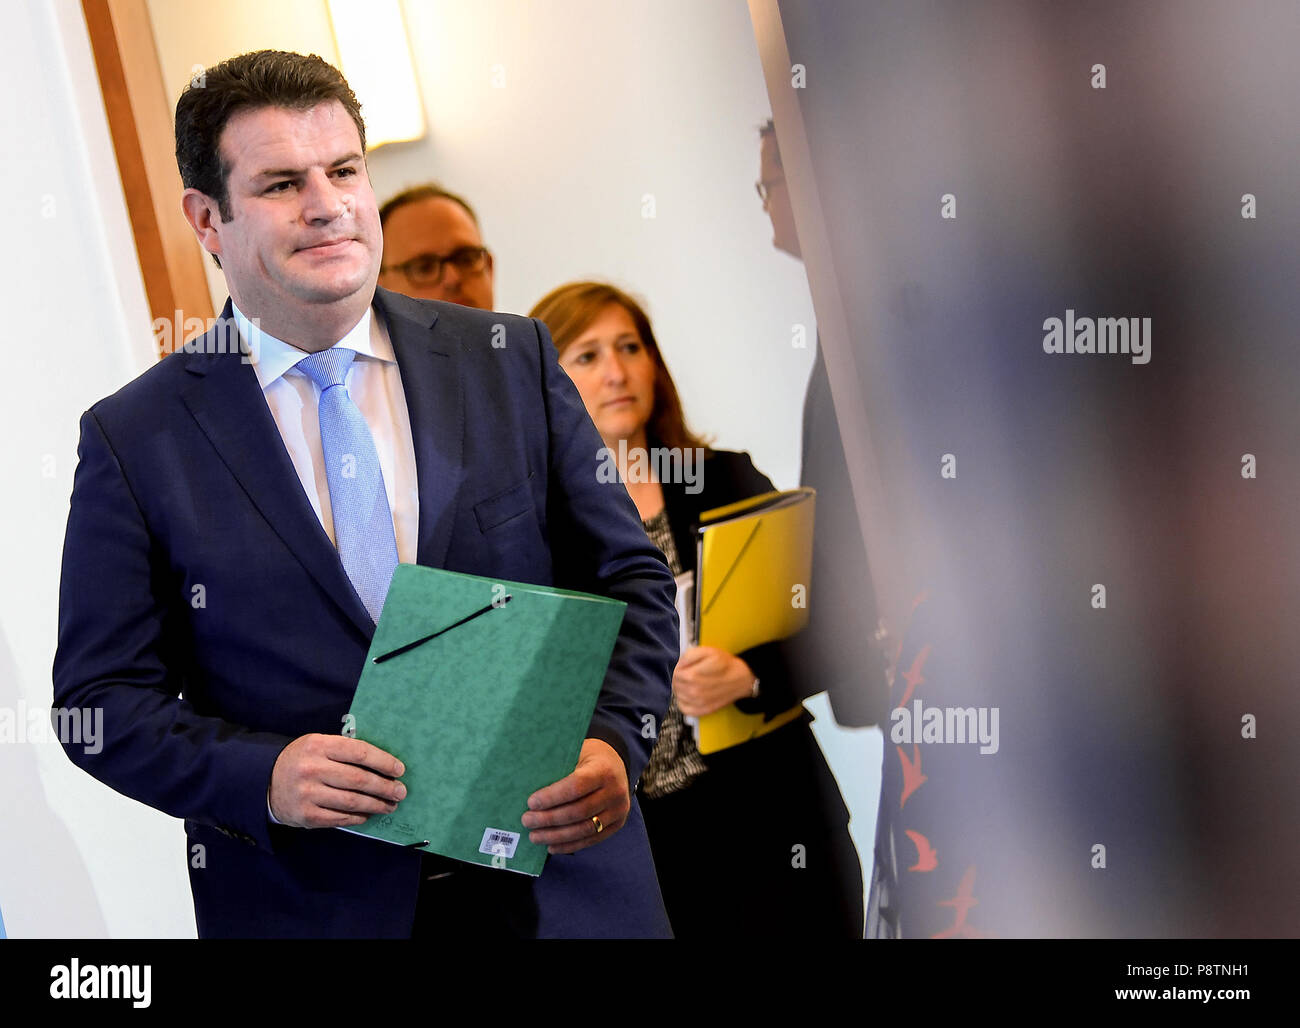 Berlin, Germany. 13th July, 2018. Minister for Work and Social Affairs from the Social Democratic Party (SPD), Hubertus Heil, coming to a press conference for the outline of the new pension concept. Credit: Britta Pedersen/dpa-zentralbid/dpa/Alamy Live News Stock Photo